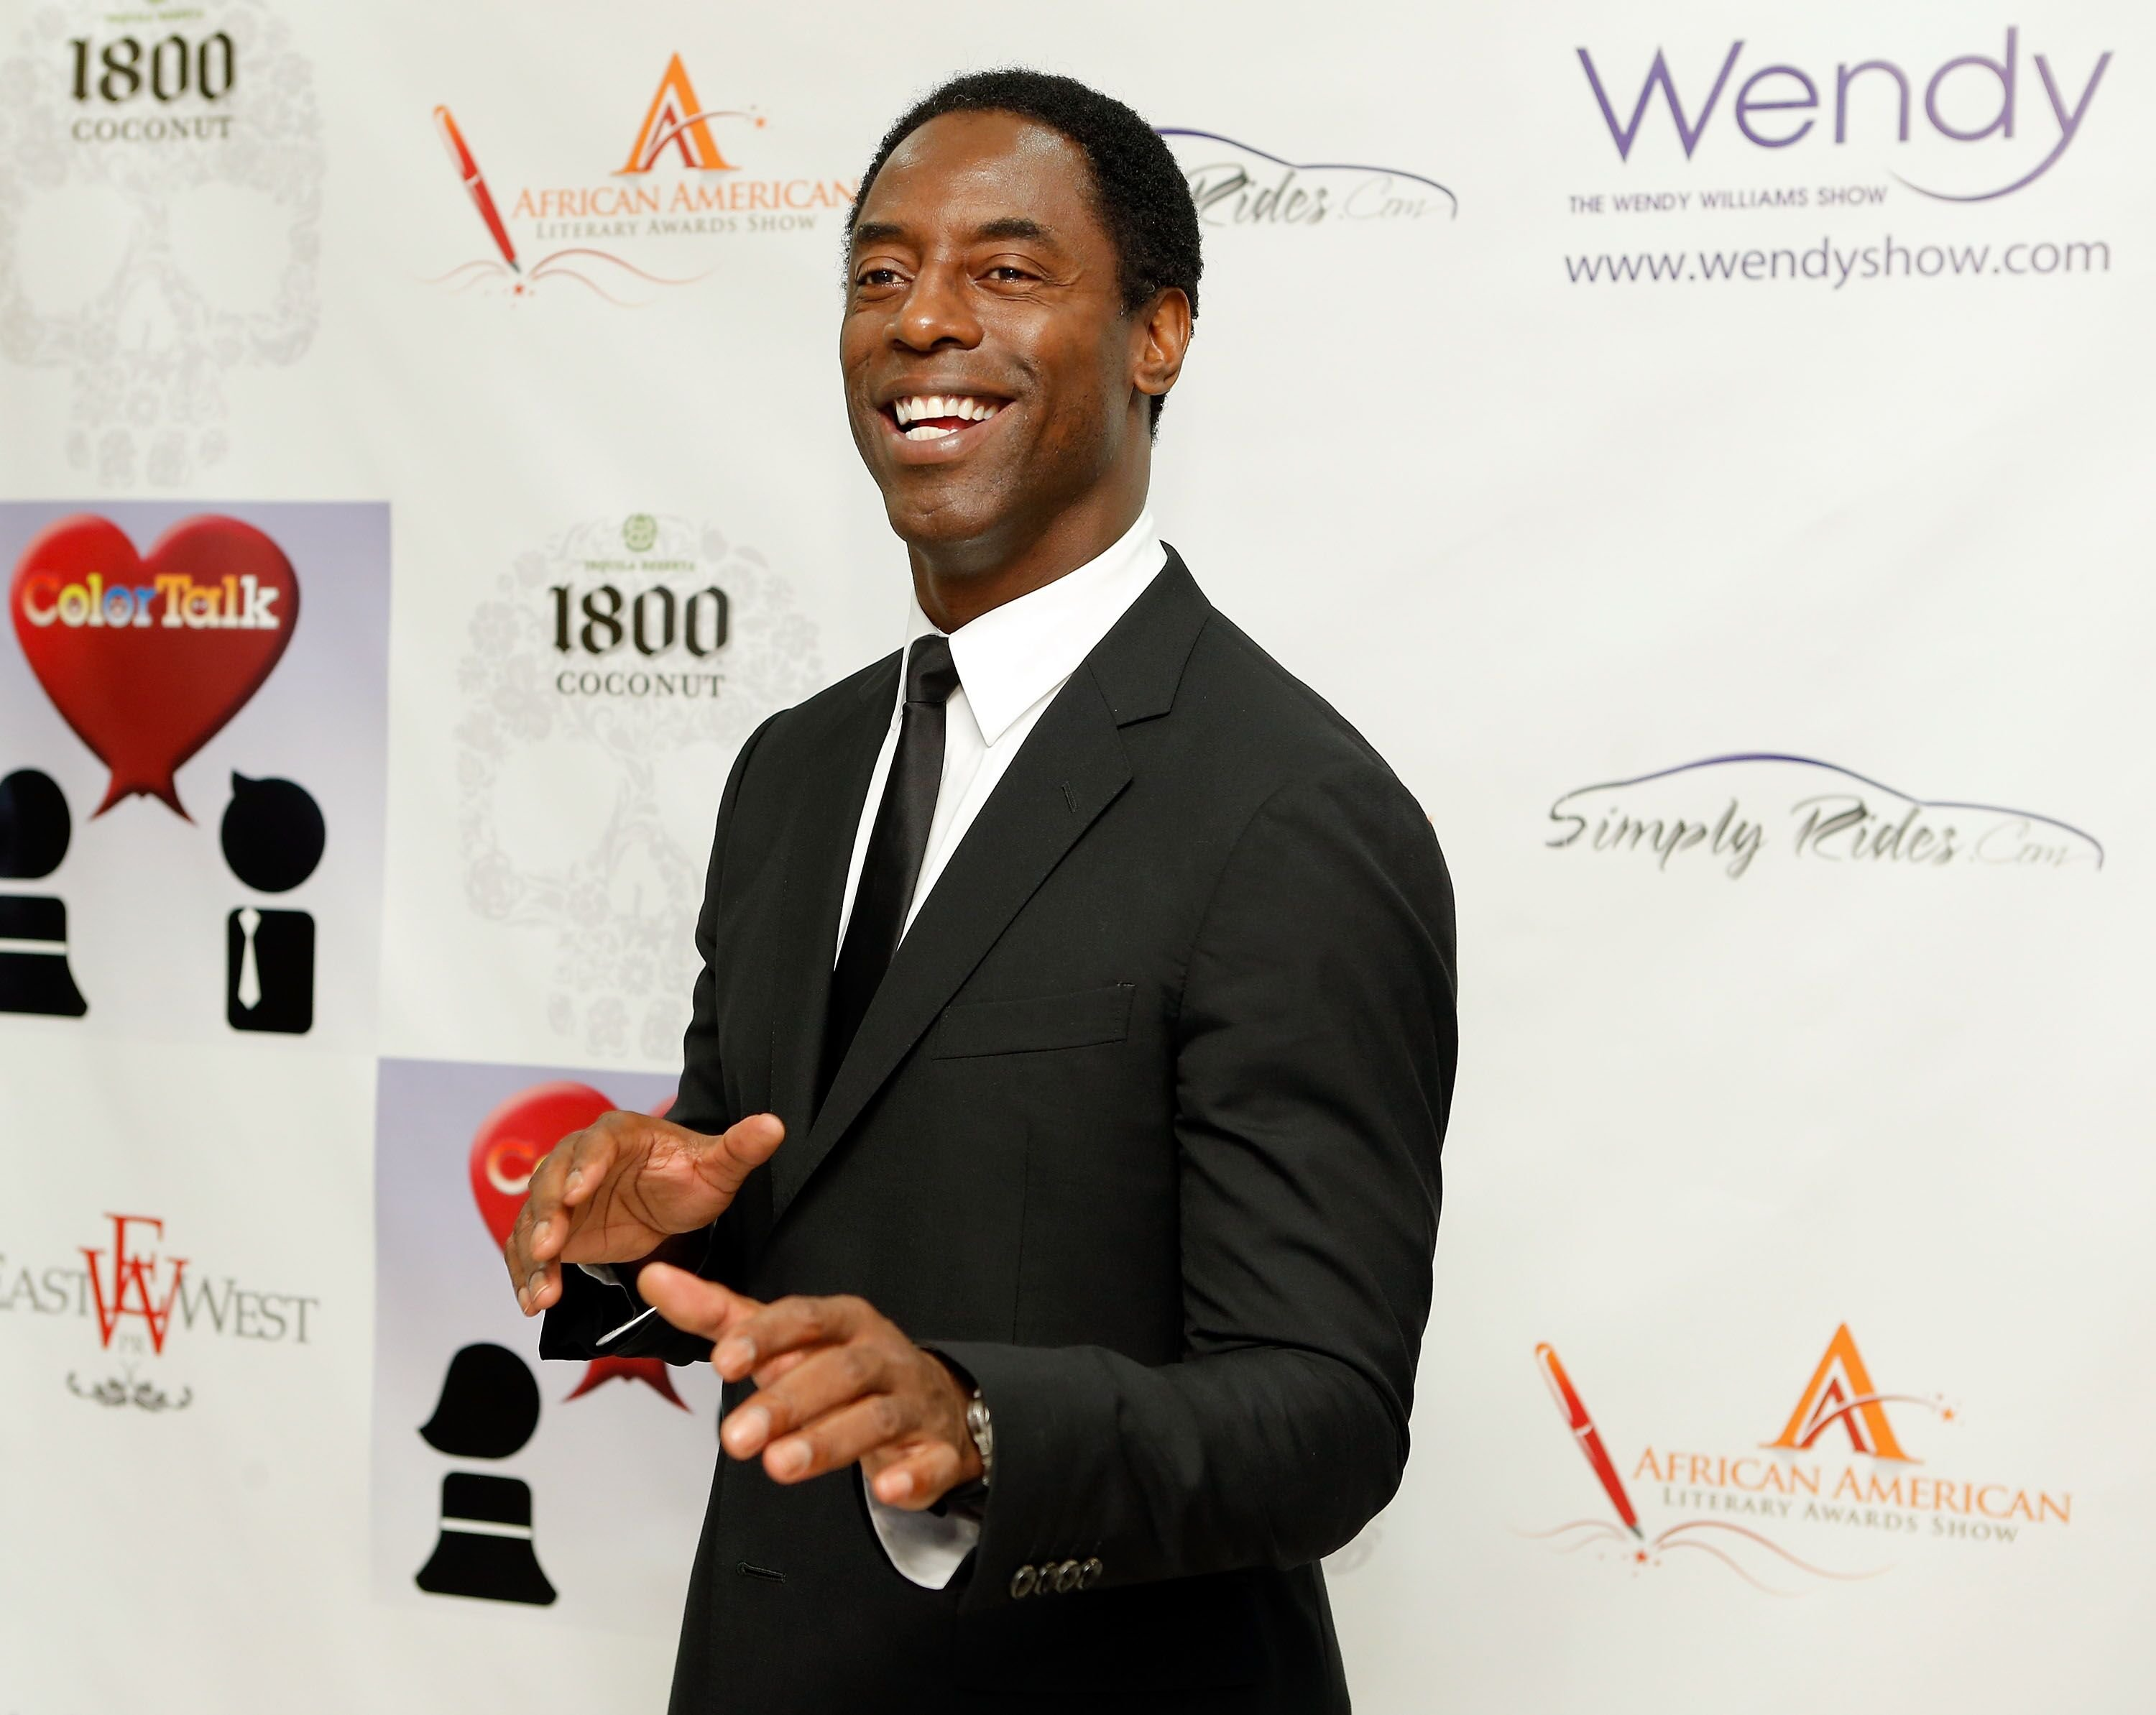 Actor/author Isaiah Washington attends the 8th Annual African American Literary Awards. | Source: Getty Images